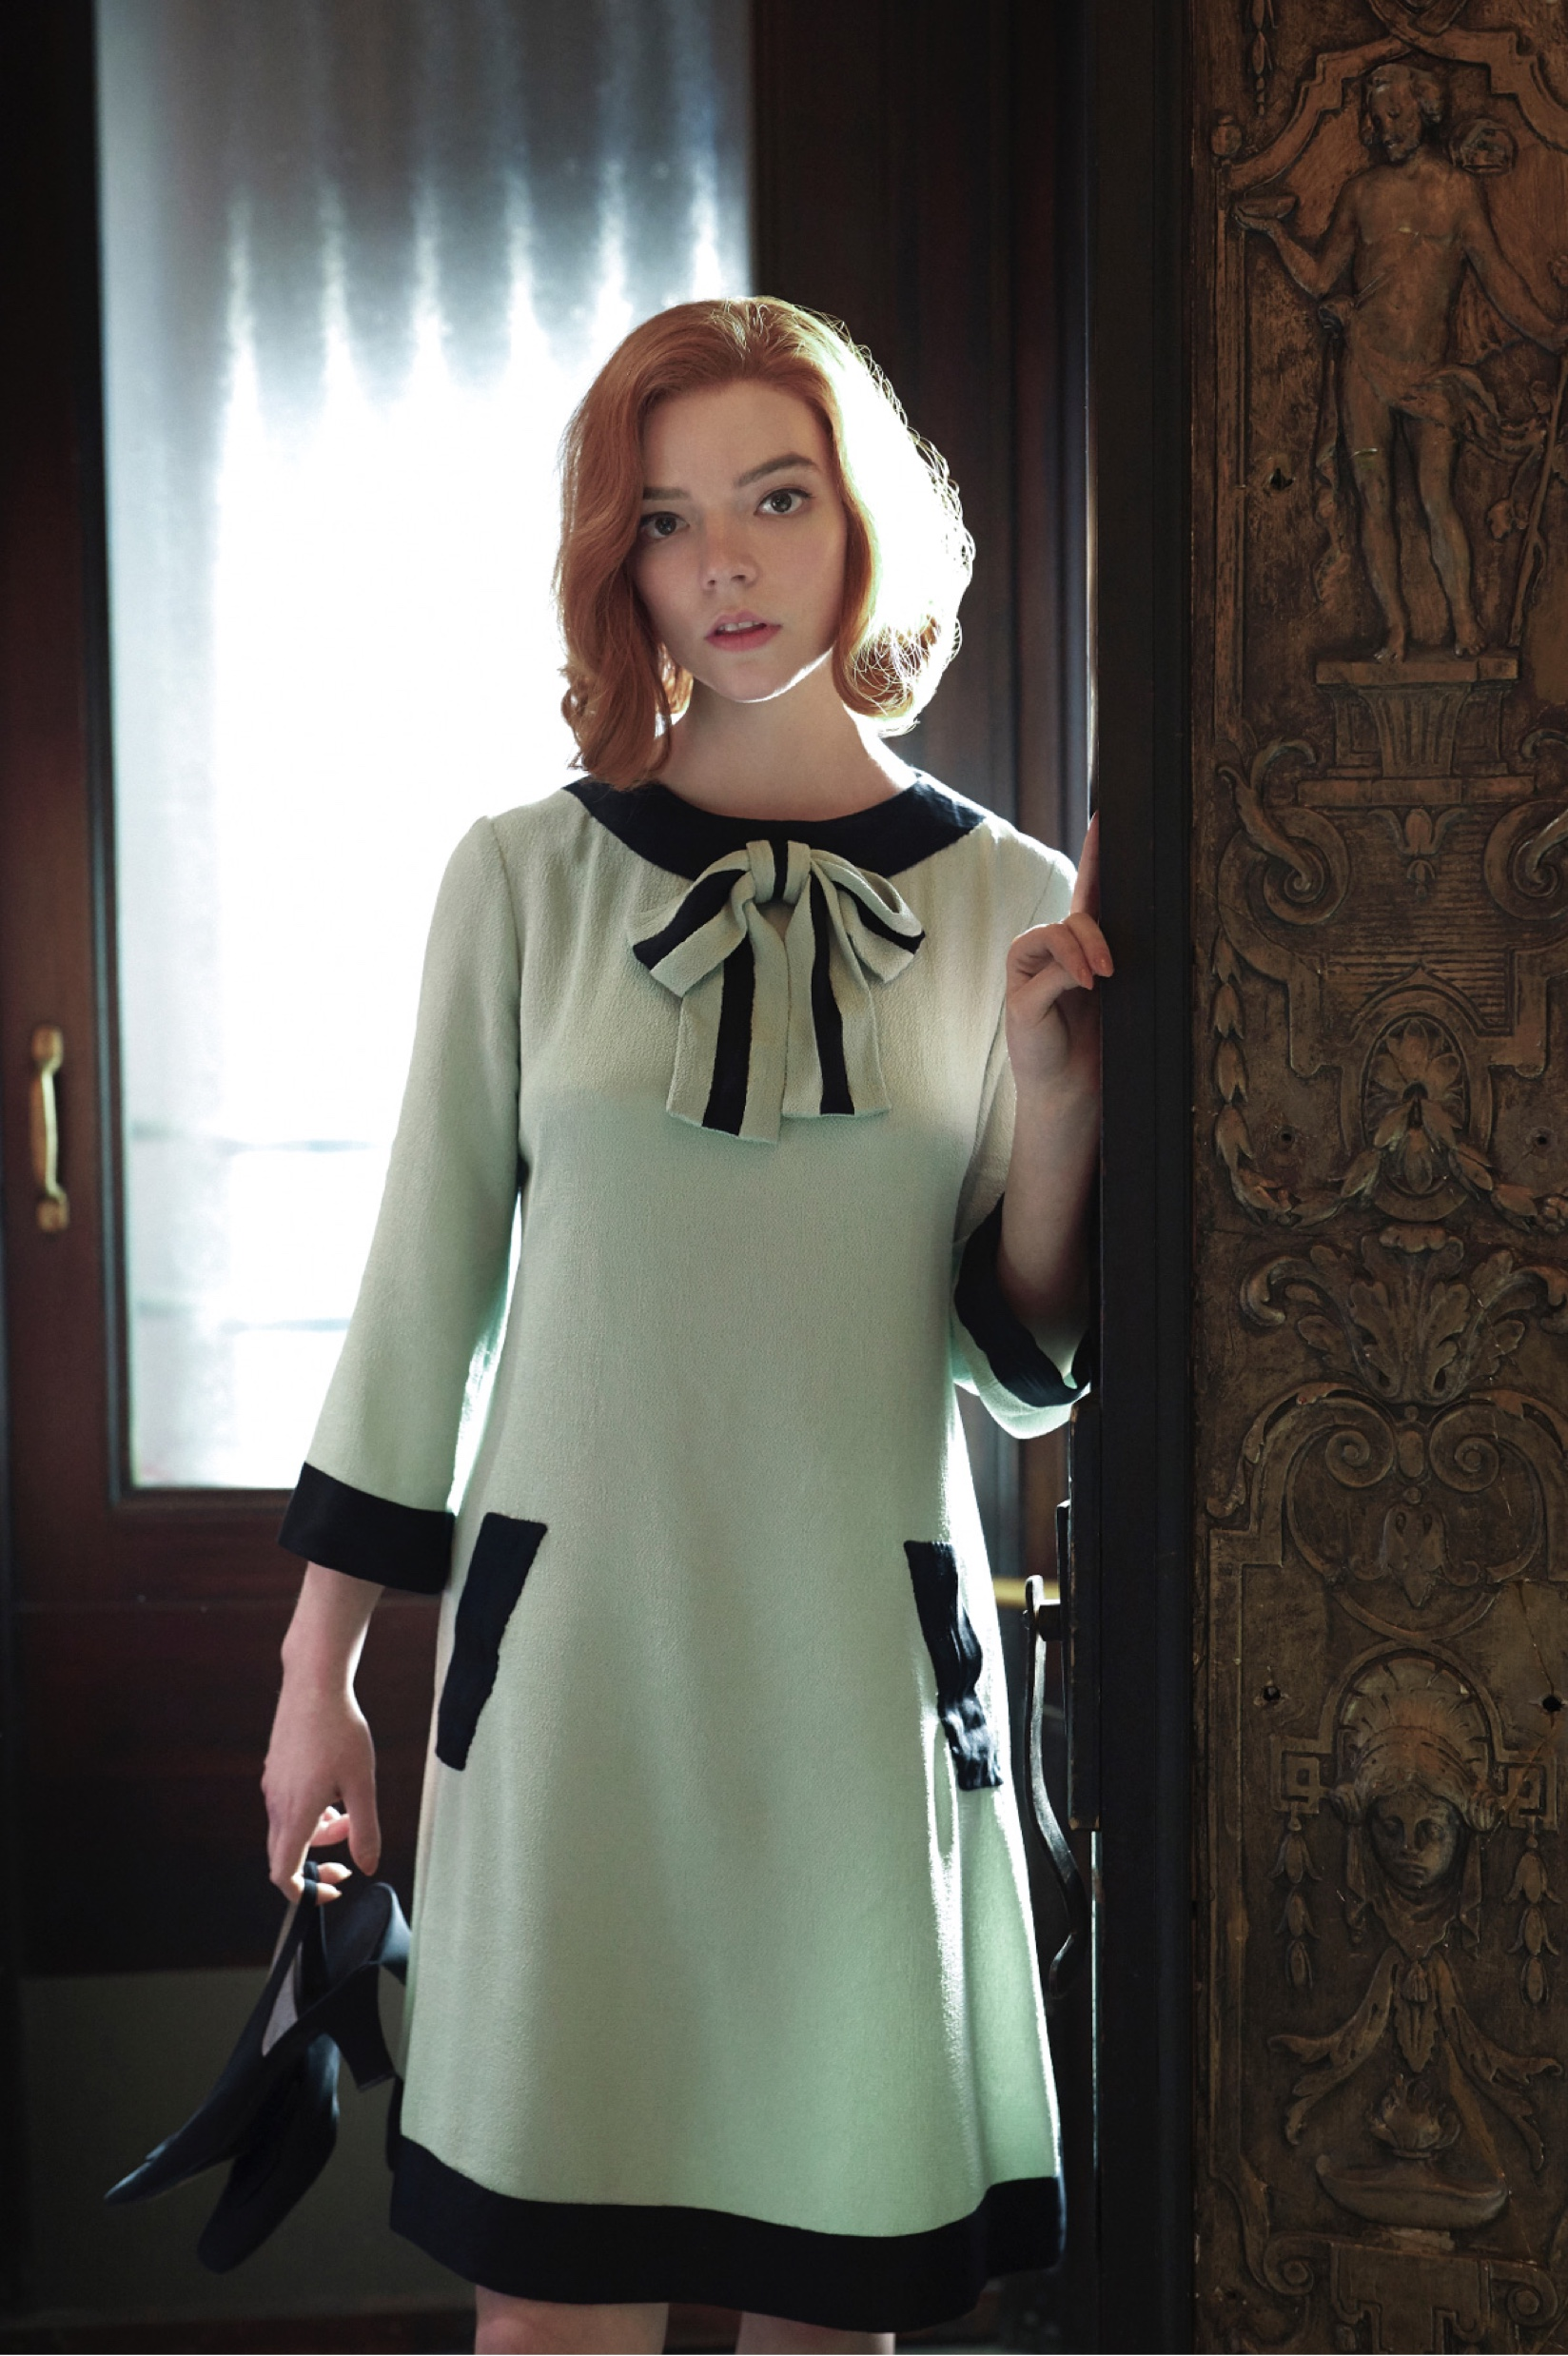 Beth stands in a doorway, heels in hand, wearing her iconic bow dress.